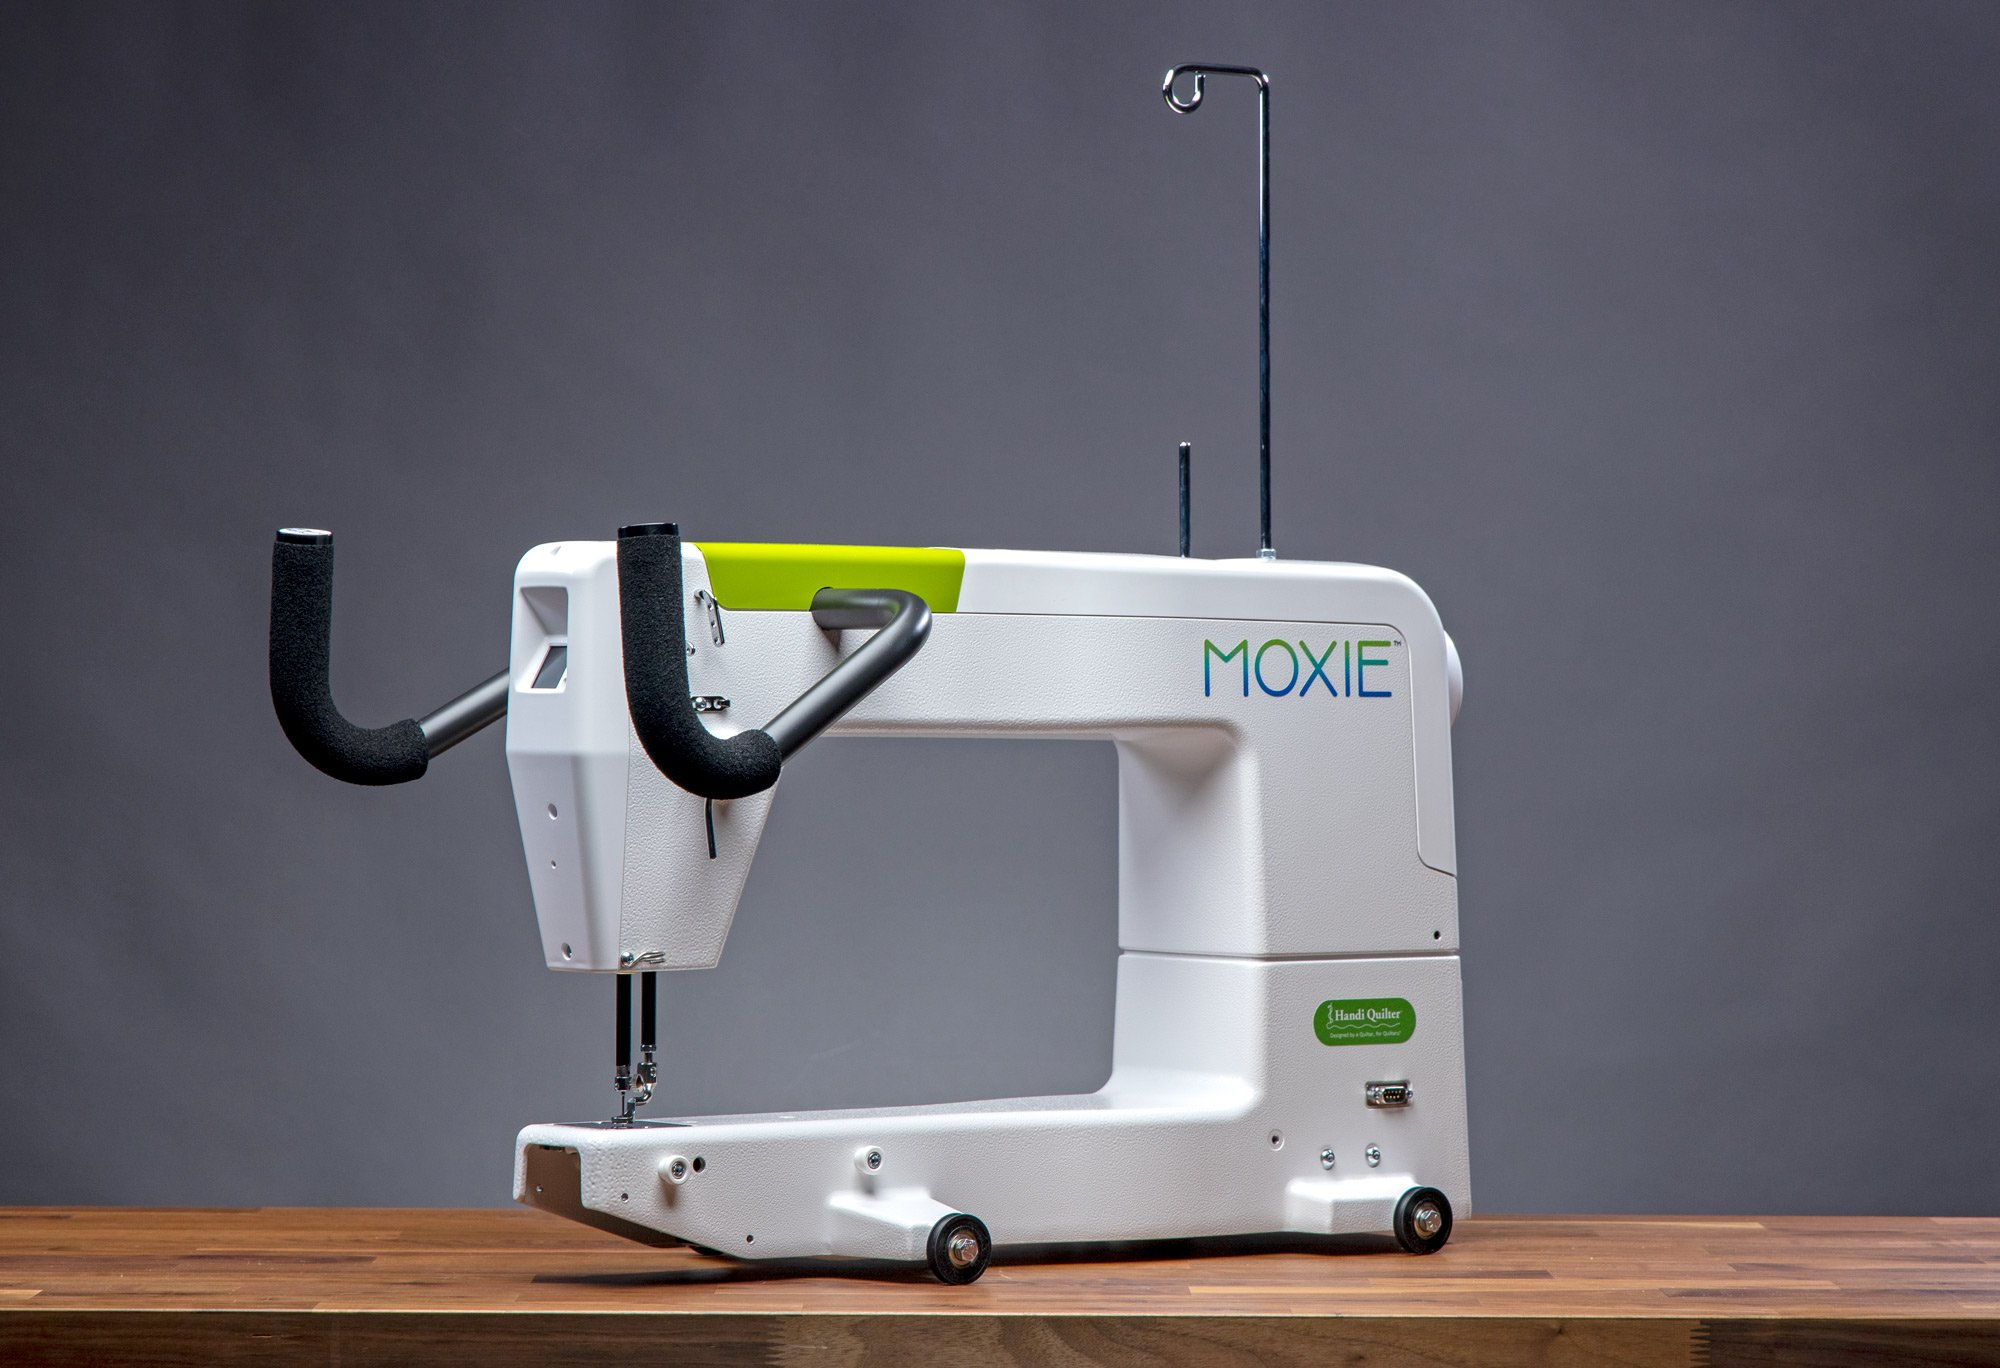 HQ Moxie with Little Foot frame